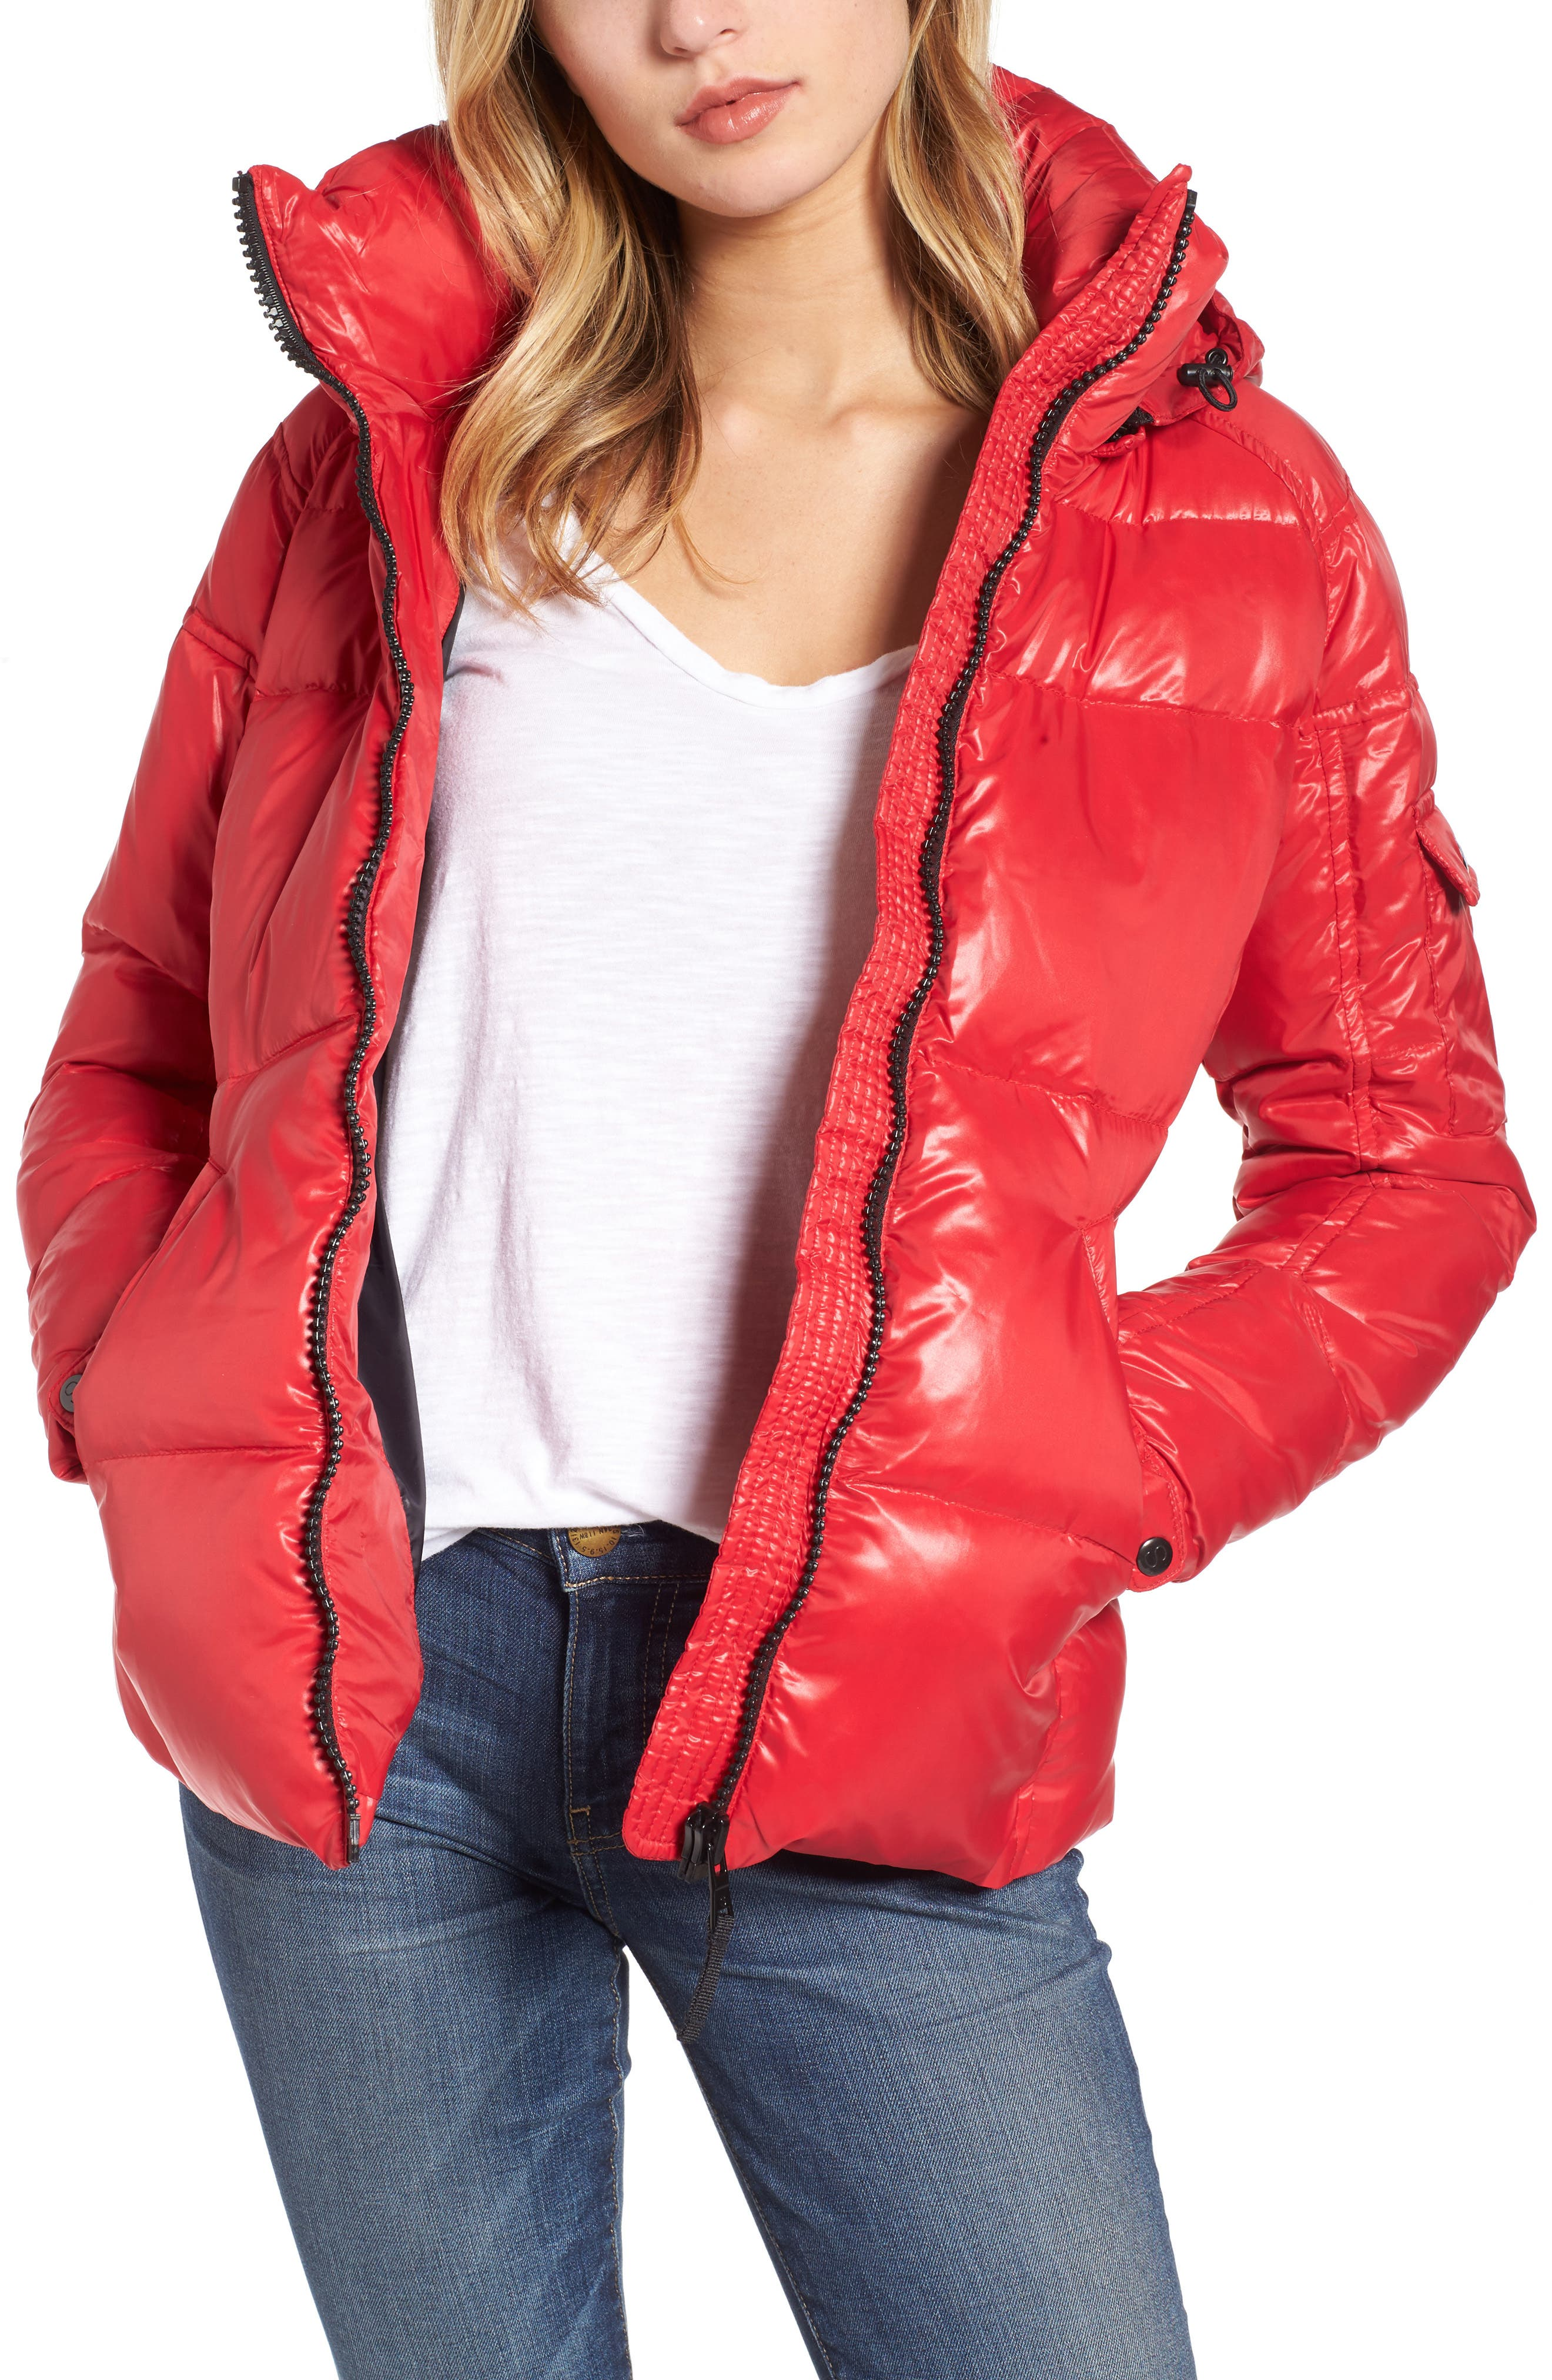 Alternate Image 1 Selected - S13 'Kylie' Metallic Quilted Jacket with Removable Hood